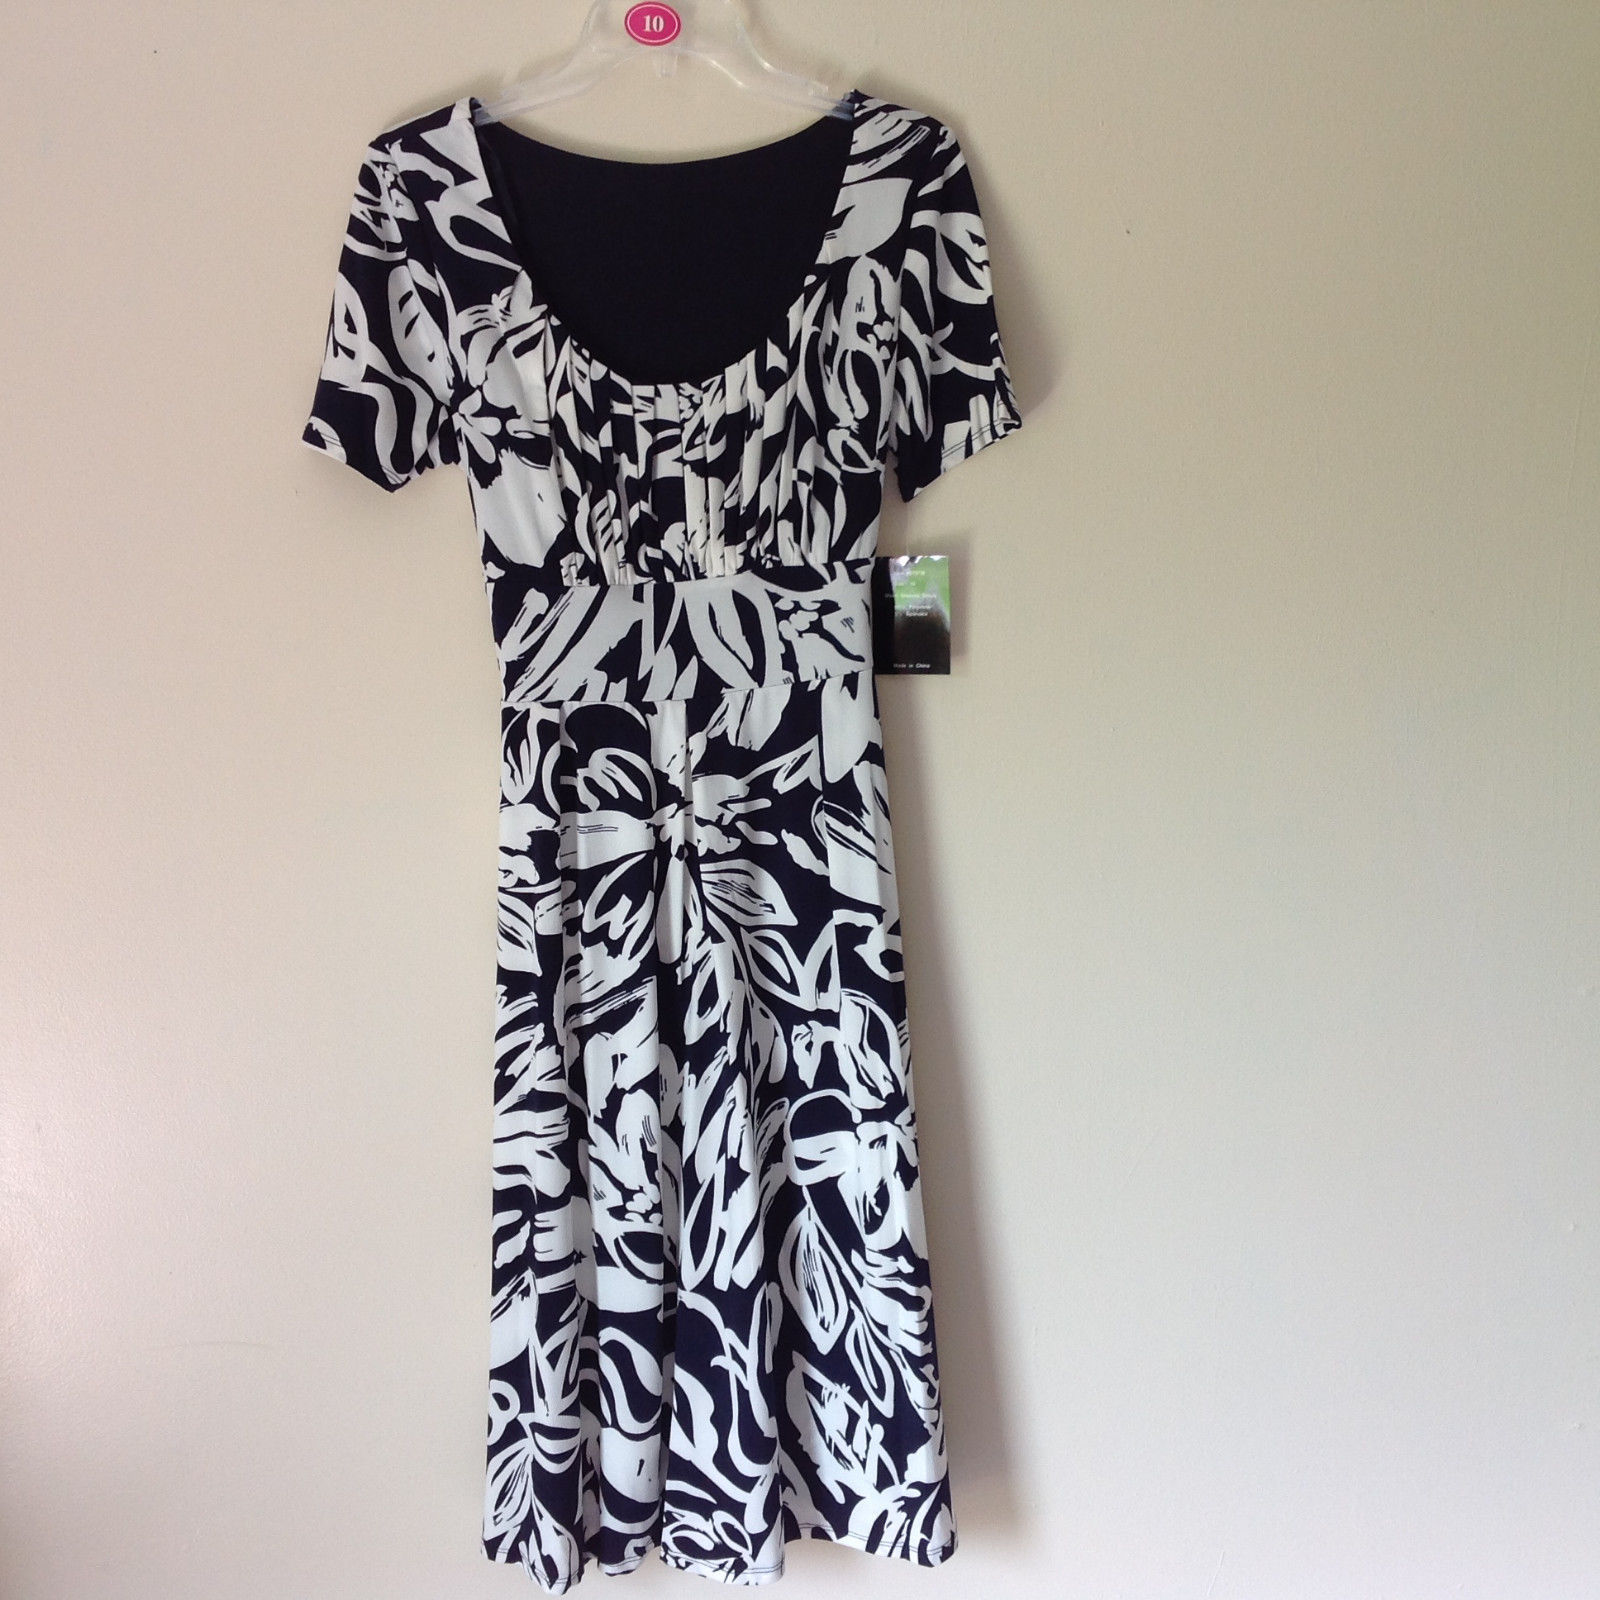 Dark Navy Blue White Design NEW Dress with Tag Scoop Neck Size 10 and Size 12